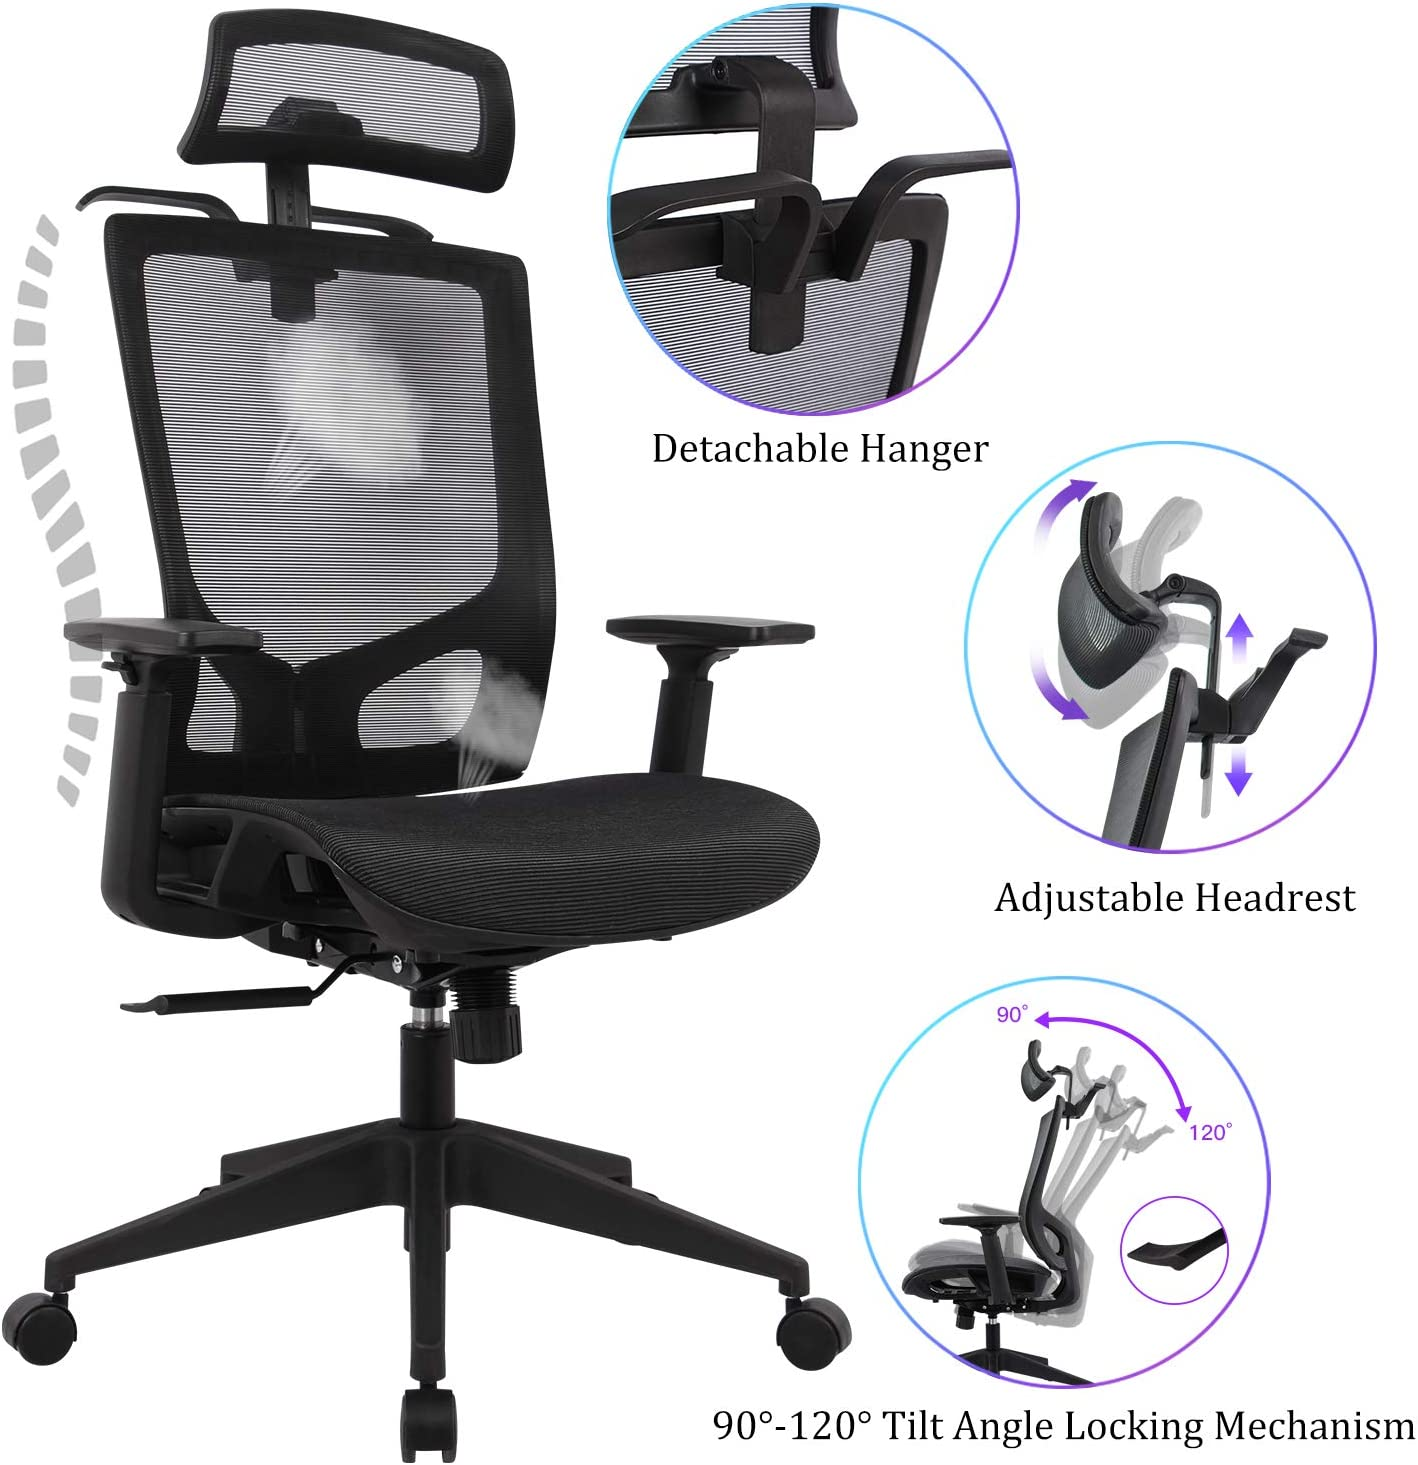 The Best Home Office Chair 2020 13 Top Chairs Available